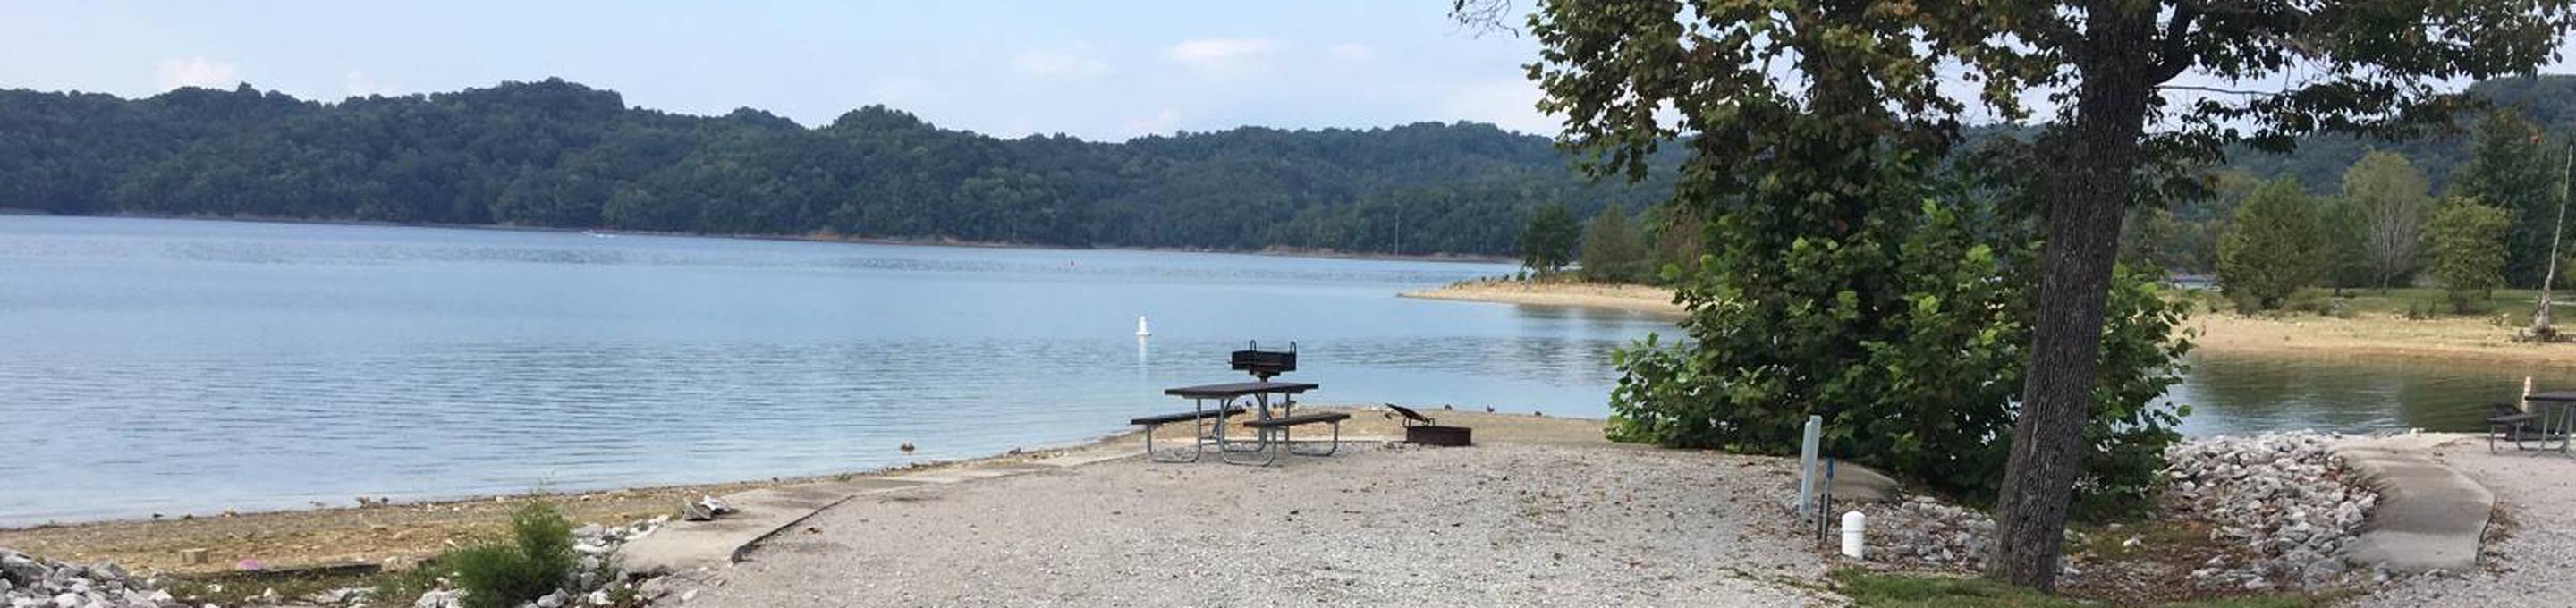 LILLYDALE CAMPGROUND SITE # 50